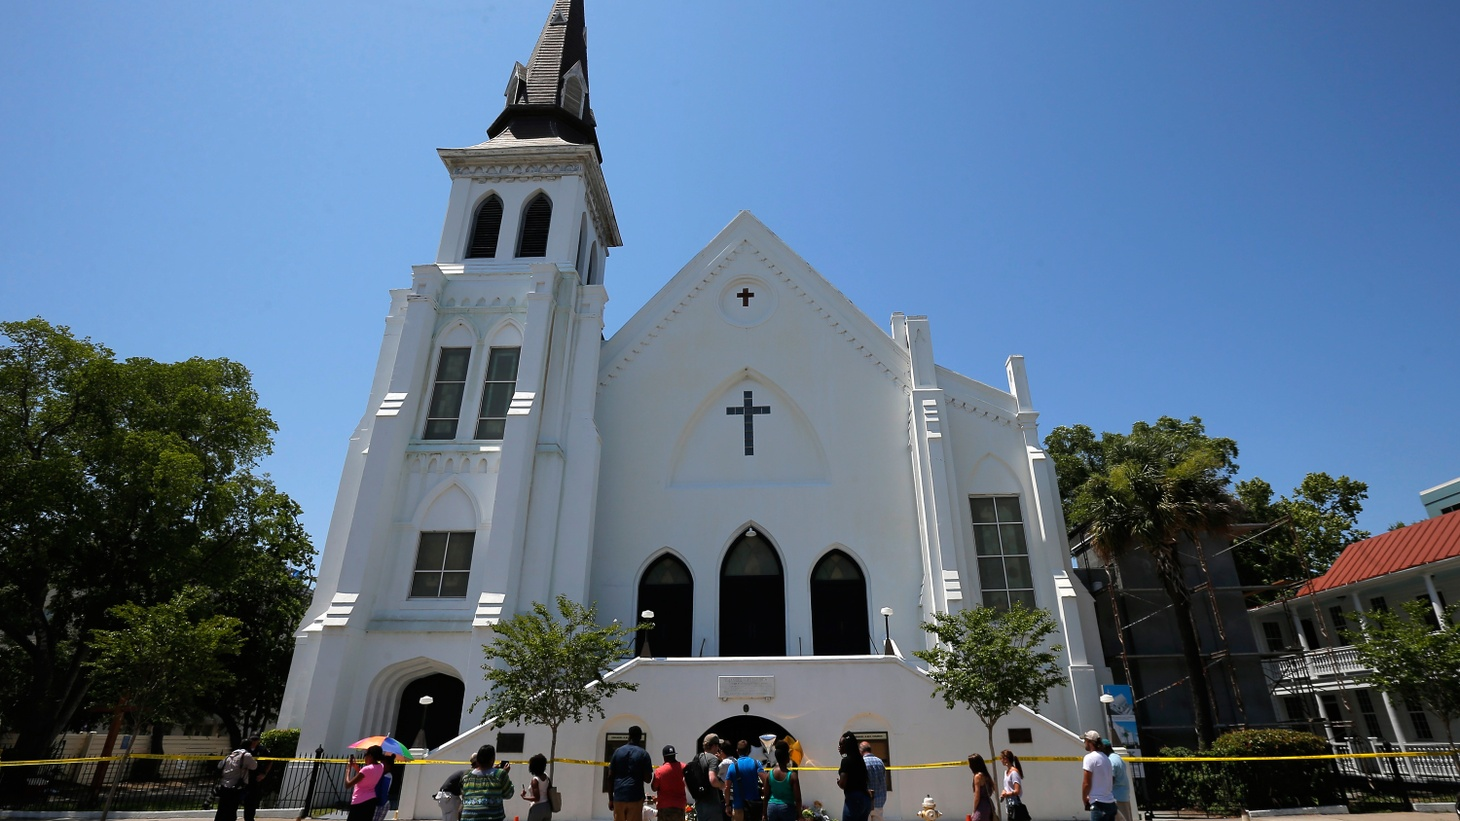 Nine people were shot to death last night during prayer at a historic black church in Charleston, South Carolina. A young, white suspect has been arrested. He's reported as saying he wanted to kill black people. We hear how the victims are being remembered and get President Obama's reaction.